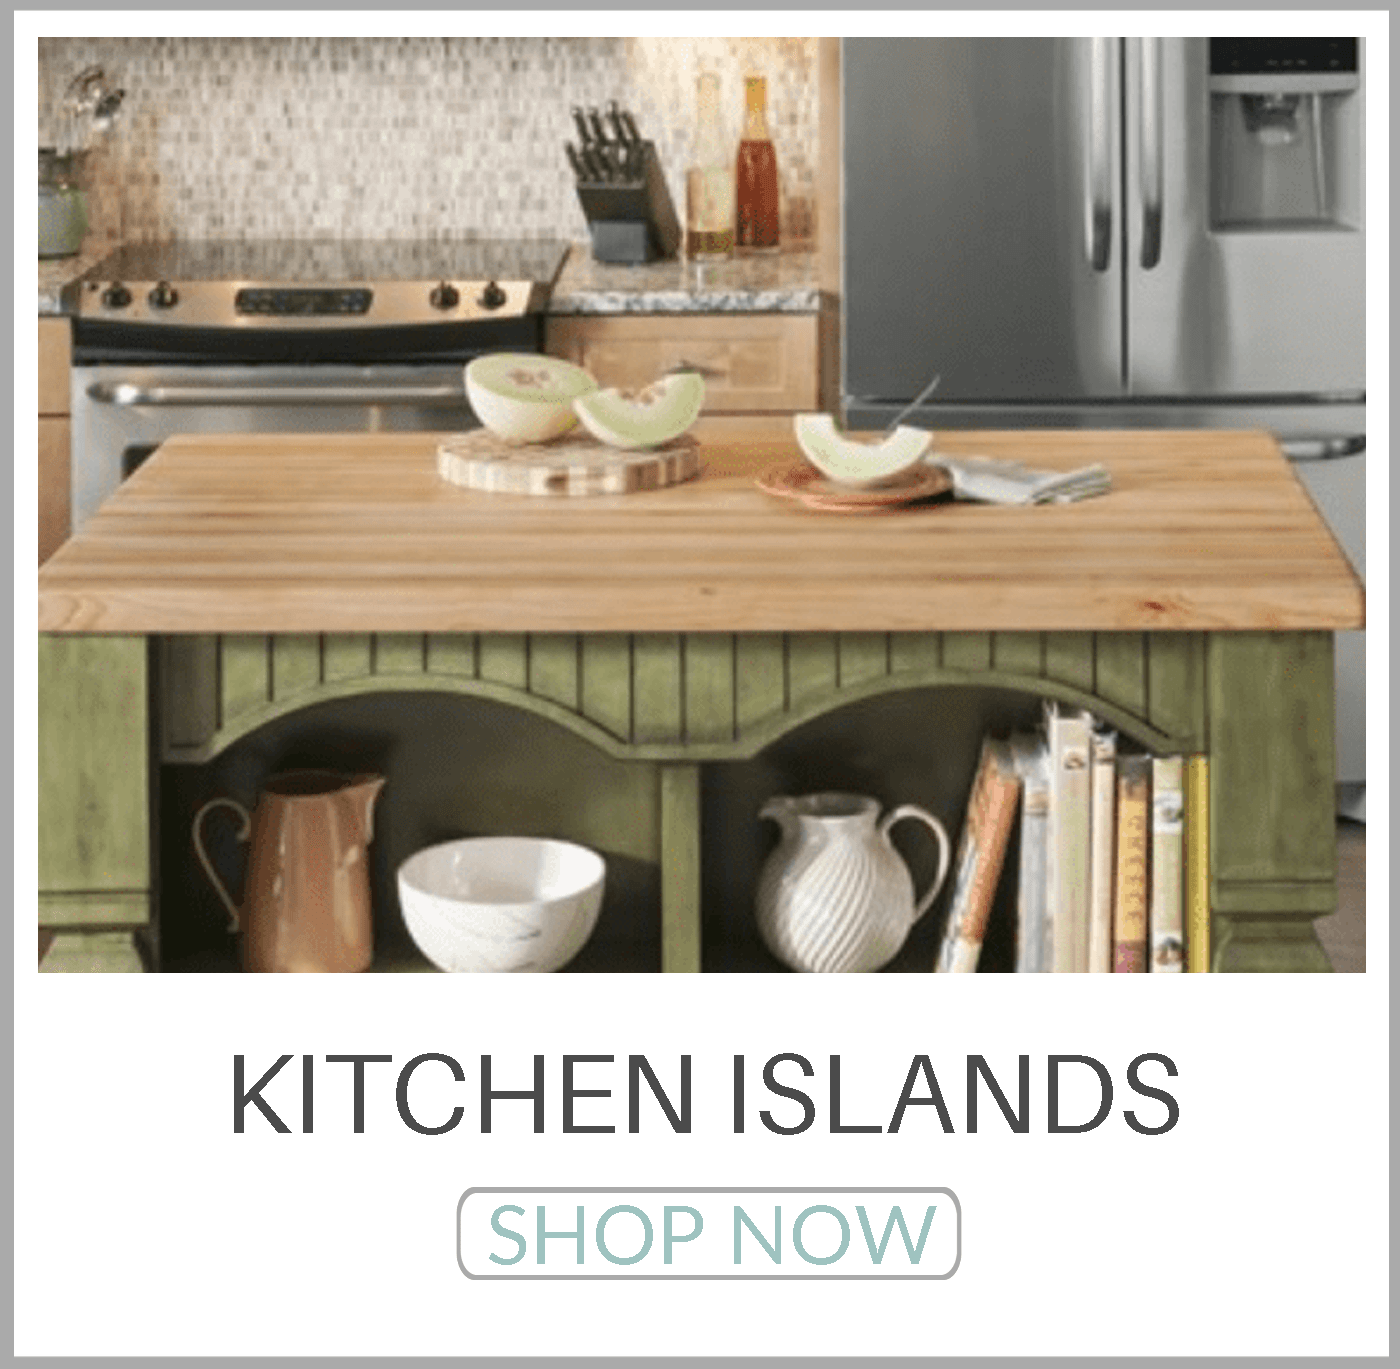 Shop All Kitchen Islands NOW